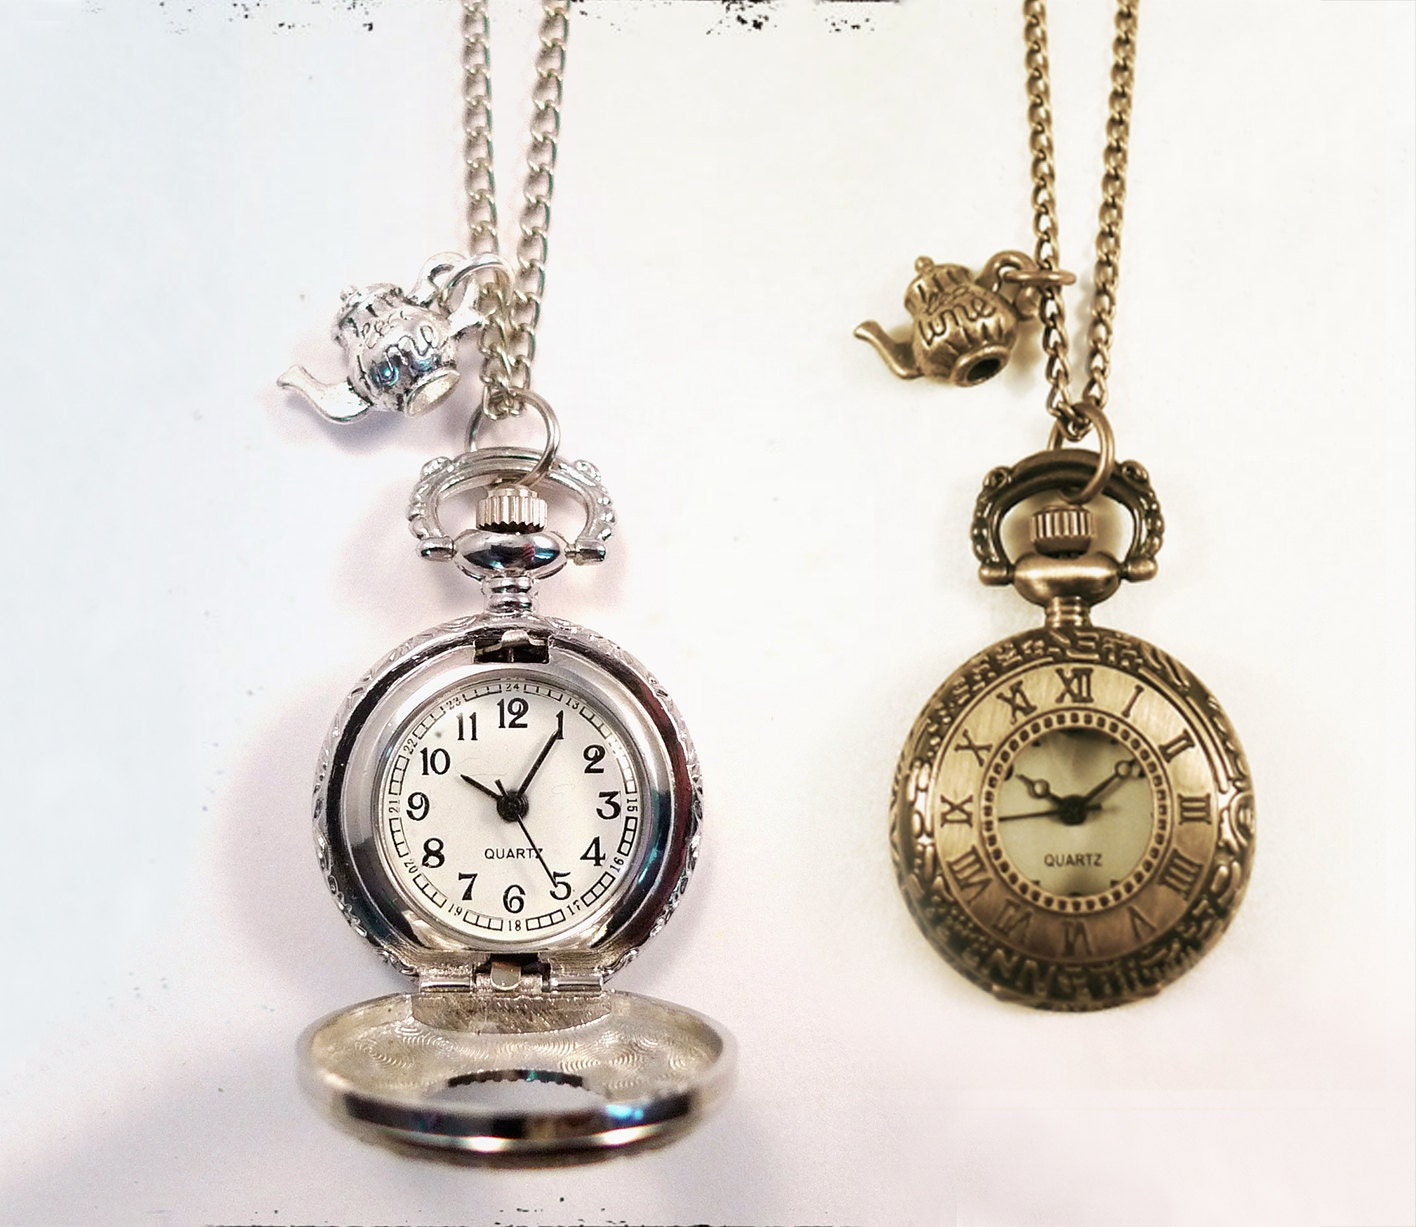 the vintage copper prague pendant necklace clock pocket gift pattern birthday watch products women men astronomical constellation quartz